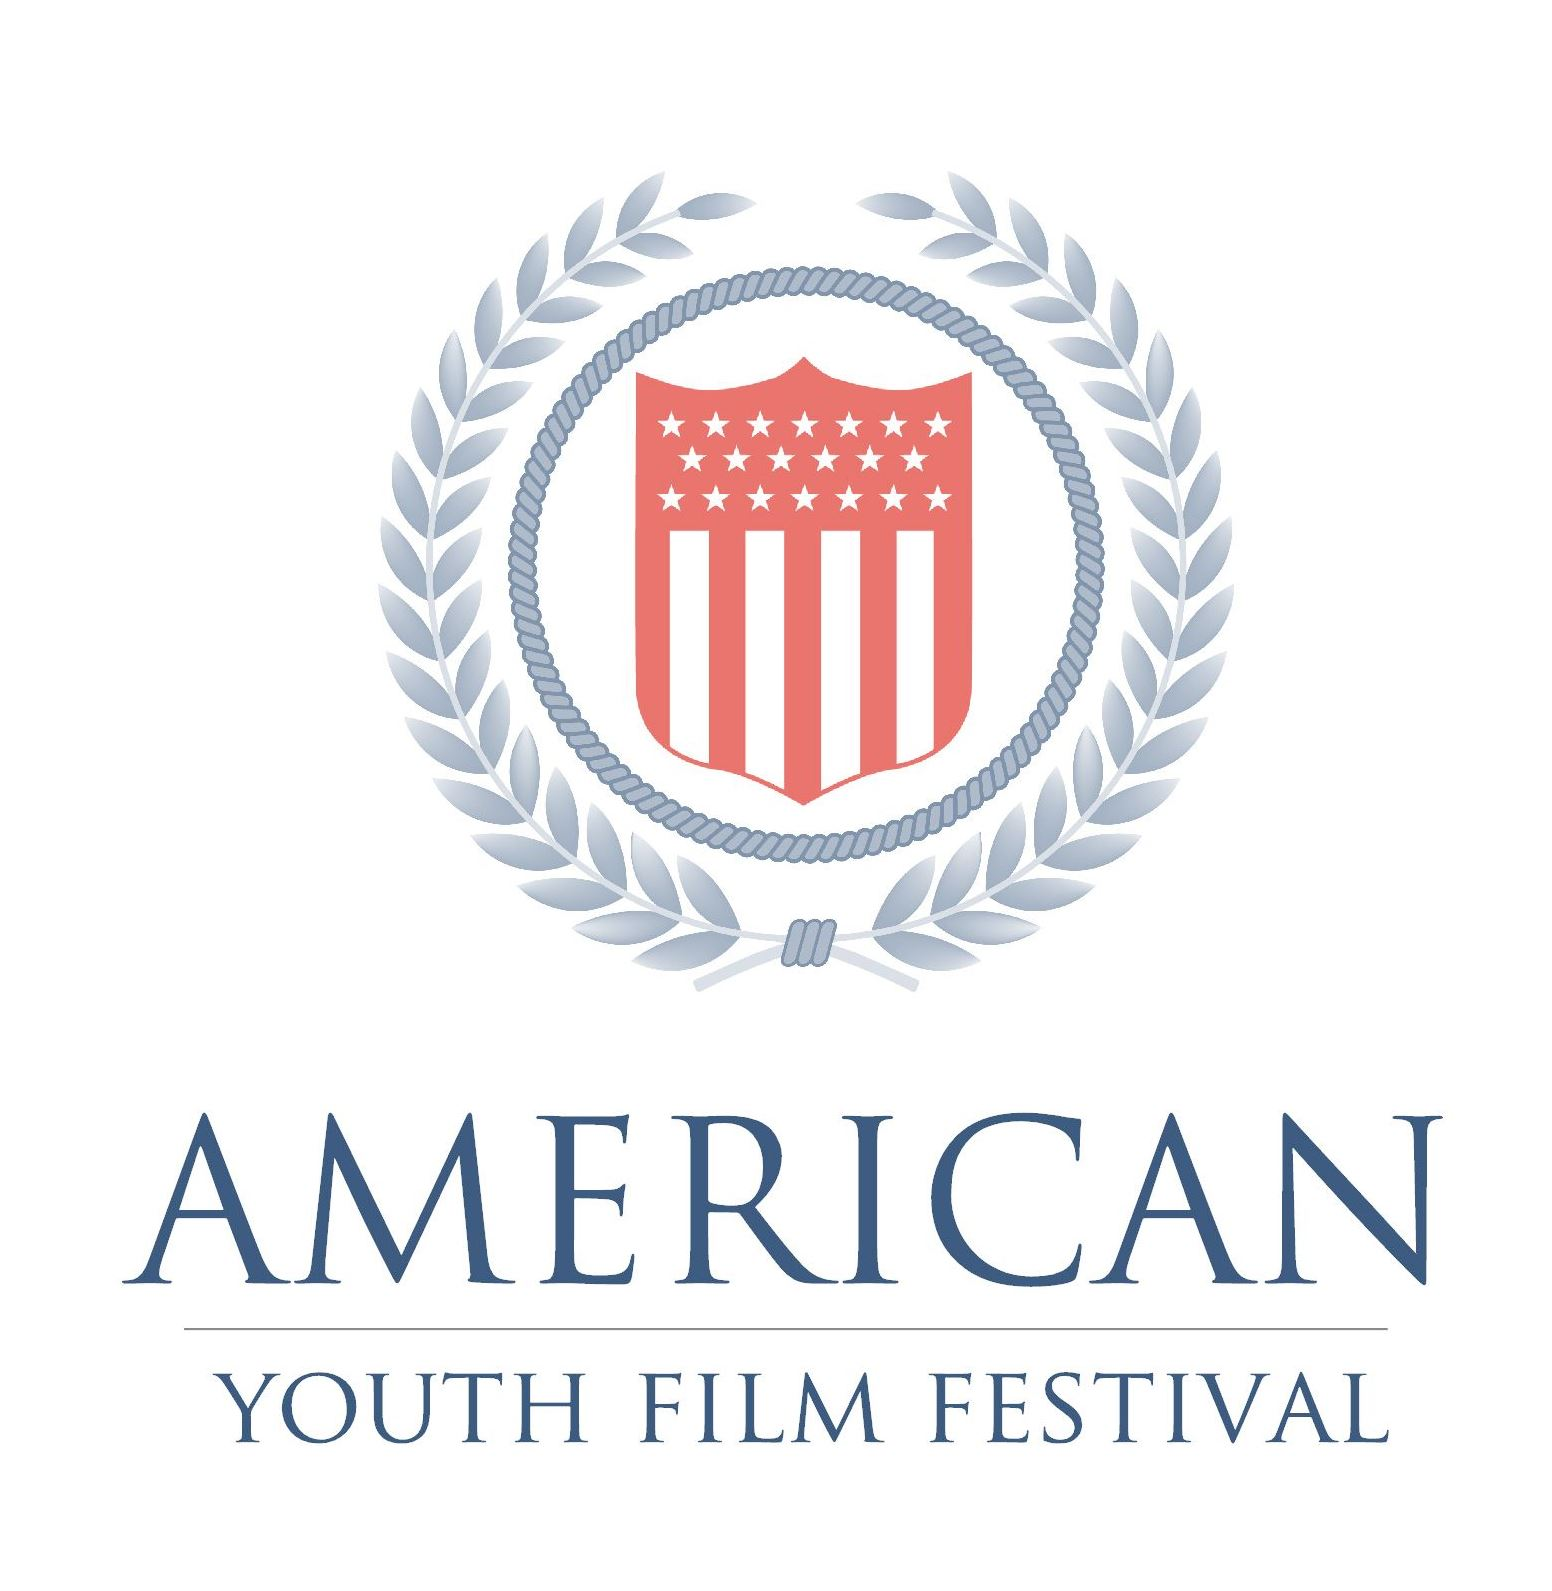 American Youth Film Festival Merchadise